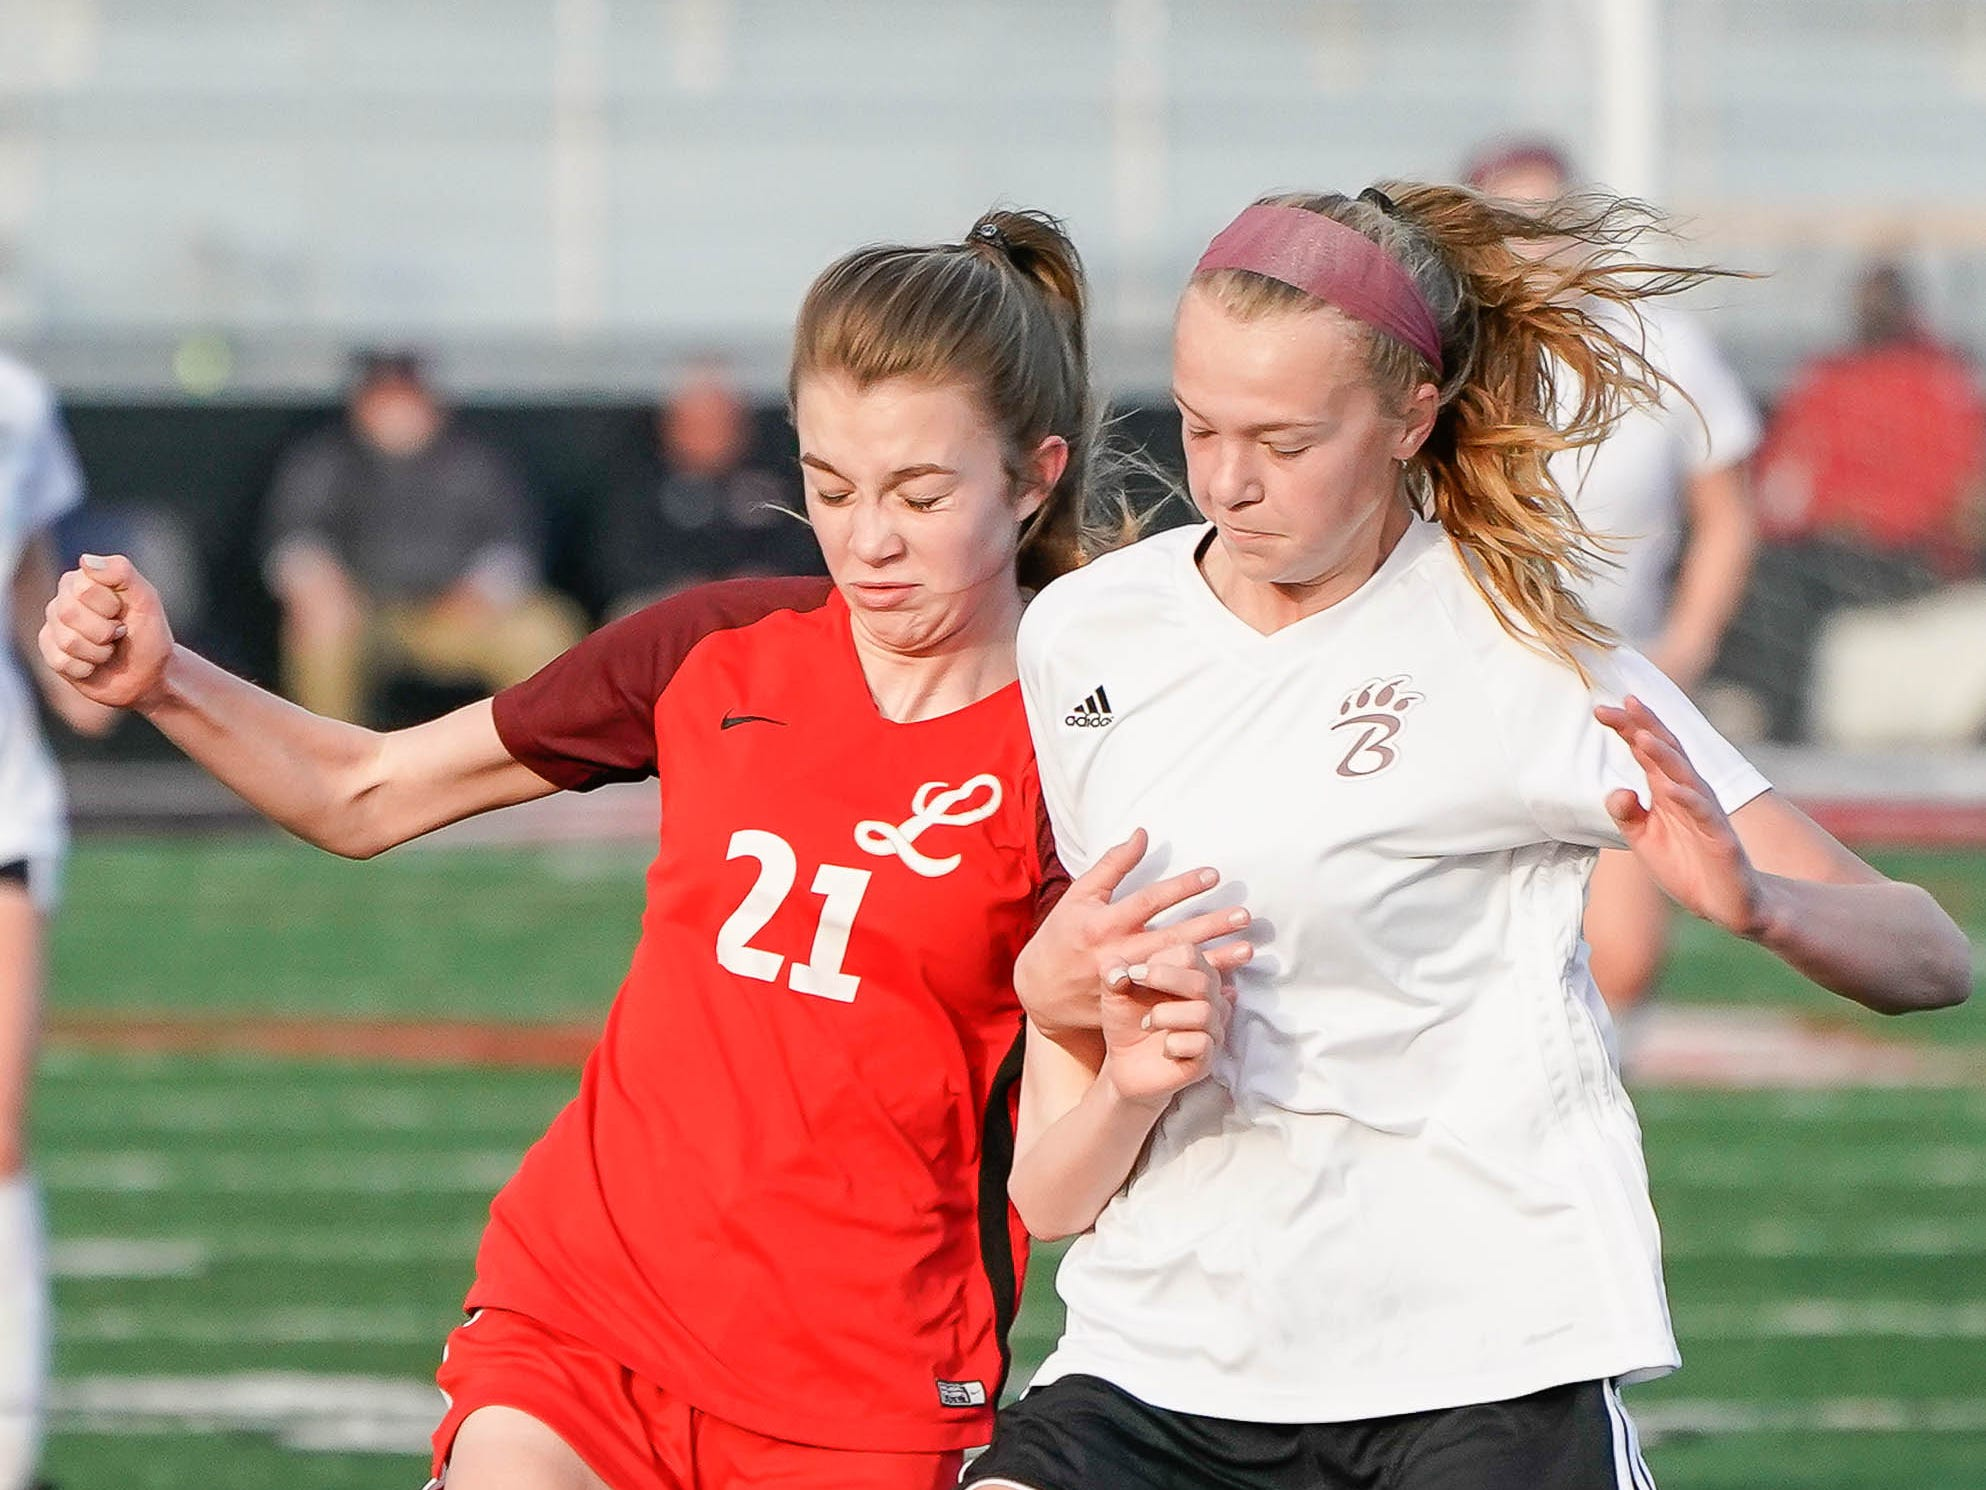 Lafayette's (21) battles with against Long Beach's Lauren Bennett for a possession during the MHSAA 5A Girls Soccer Championships held at Brandon High School in Brandon, MS, Saturday February 9, 2019.(Bob Smith-For The Clarion Ledger)